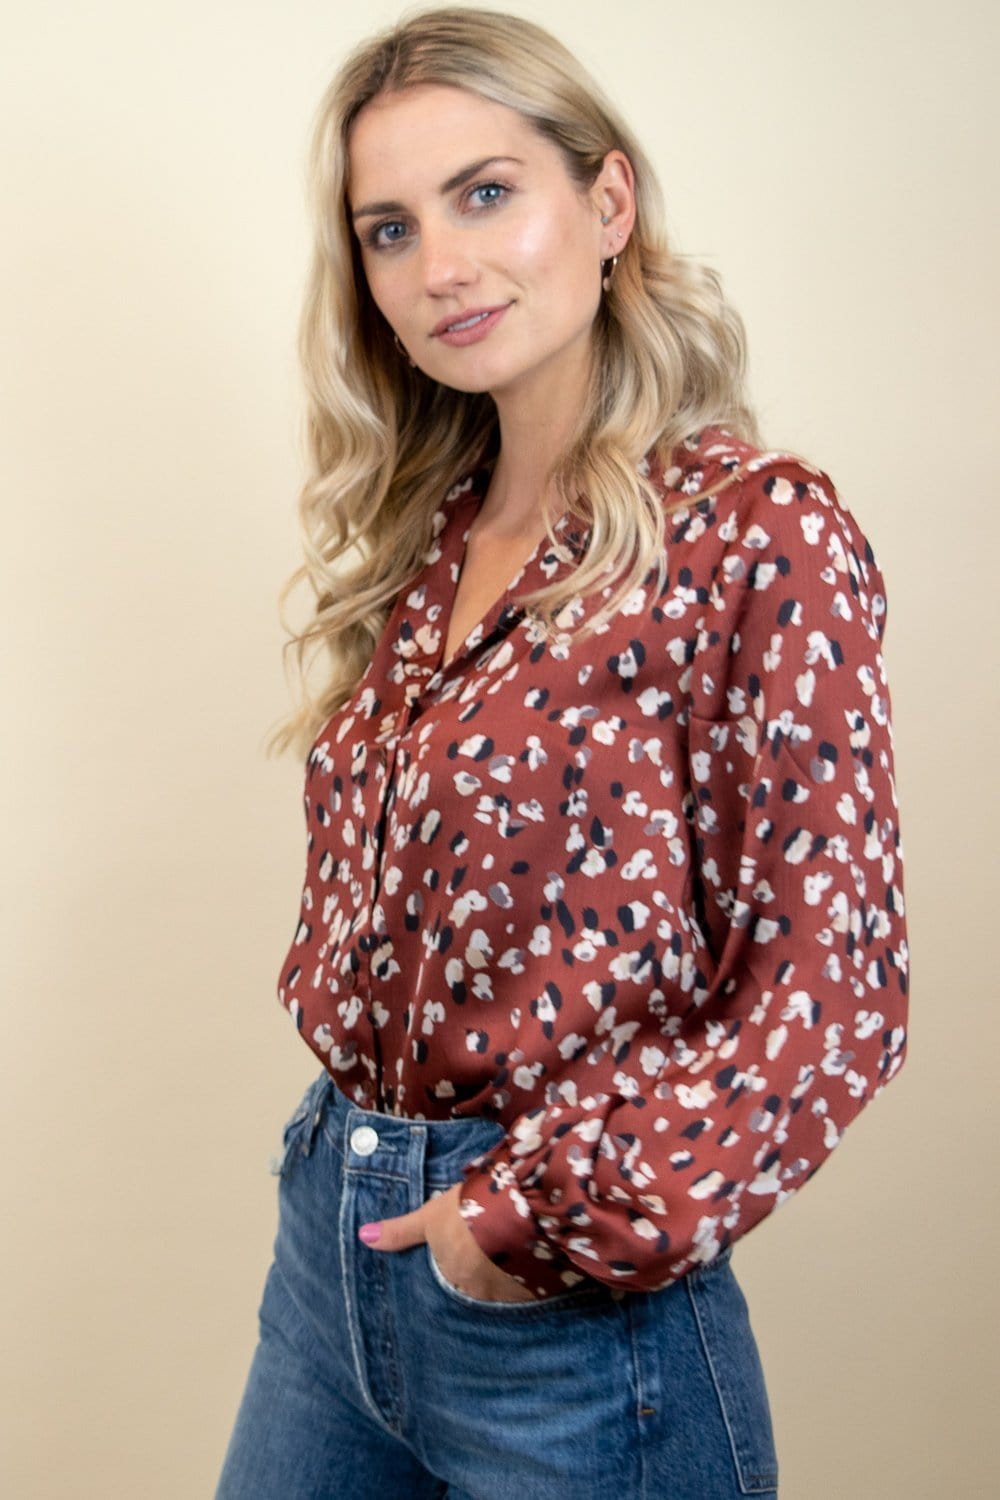 Le Rêveur Monet Printed Speckled Blouse